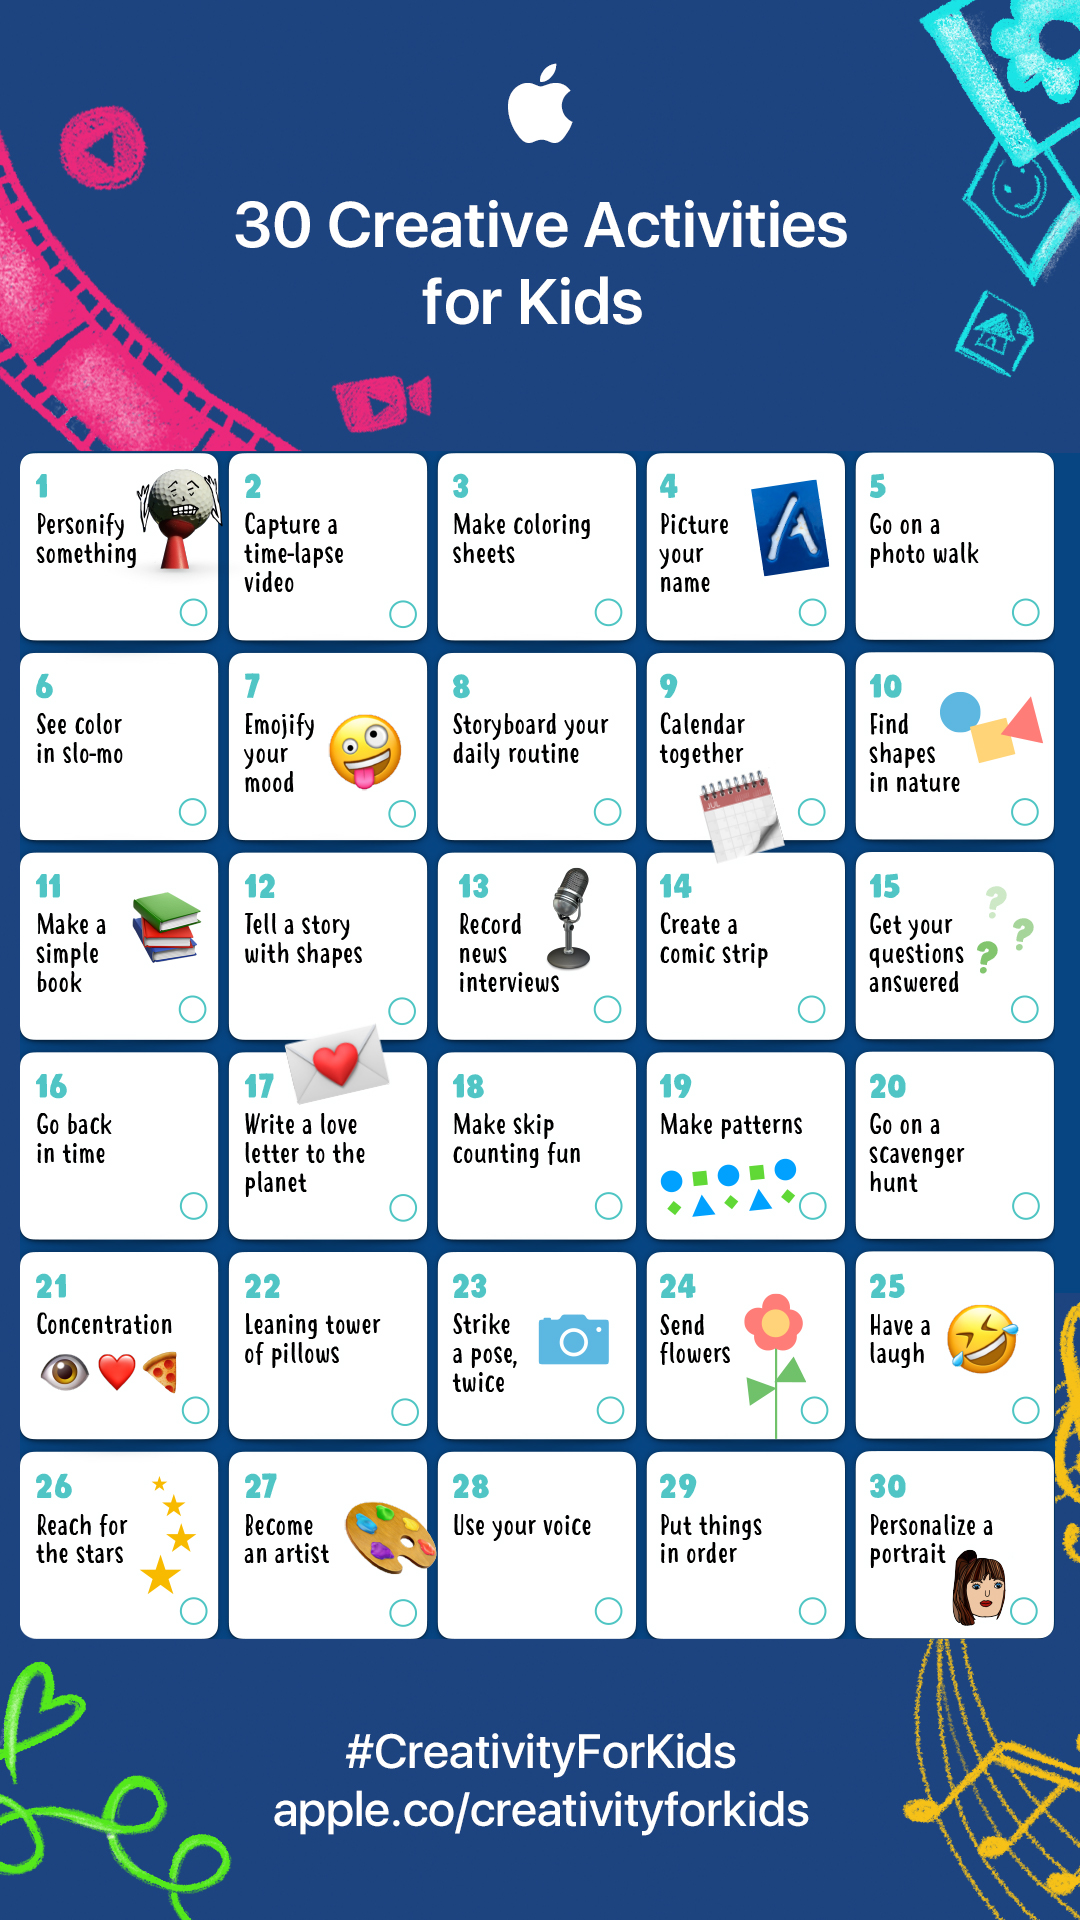 Creative activities 1-10 for kids to make with iPads